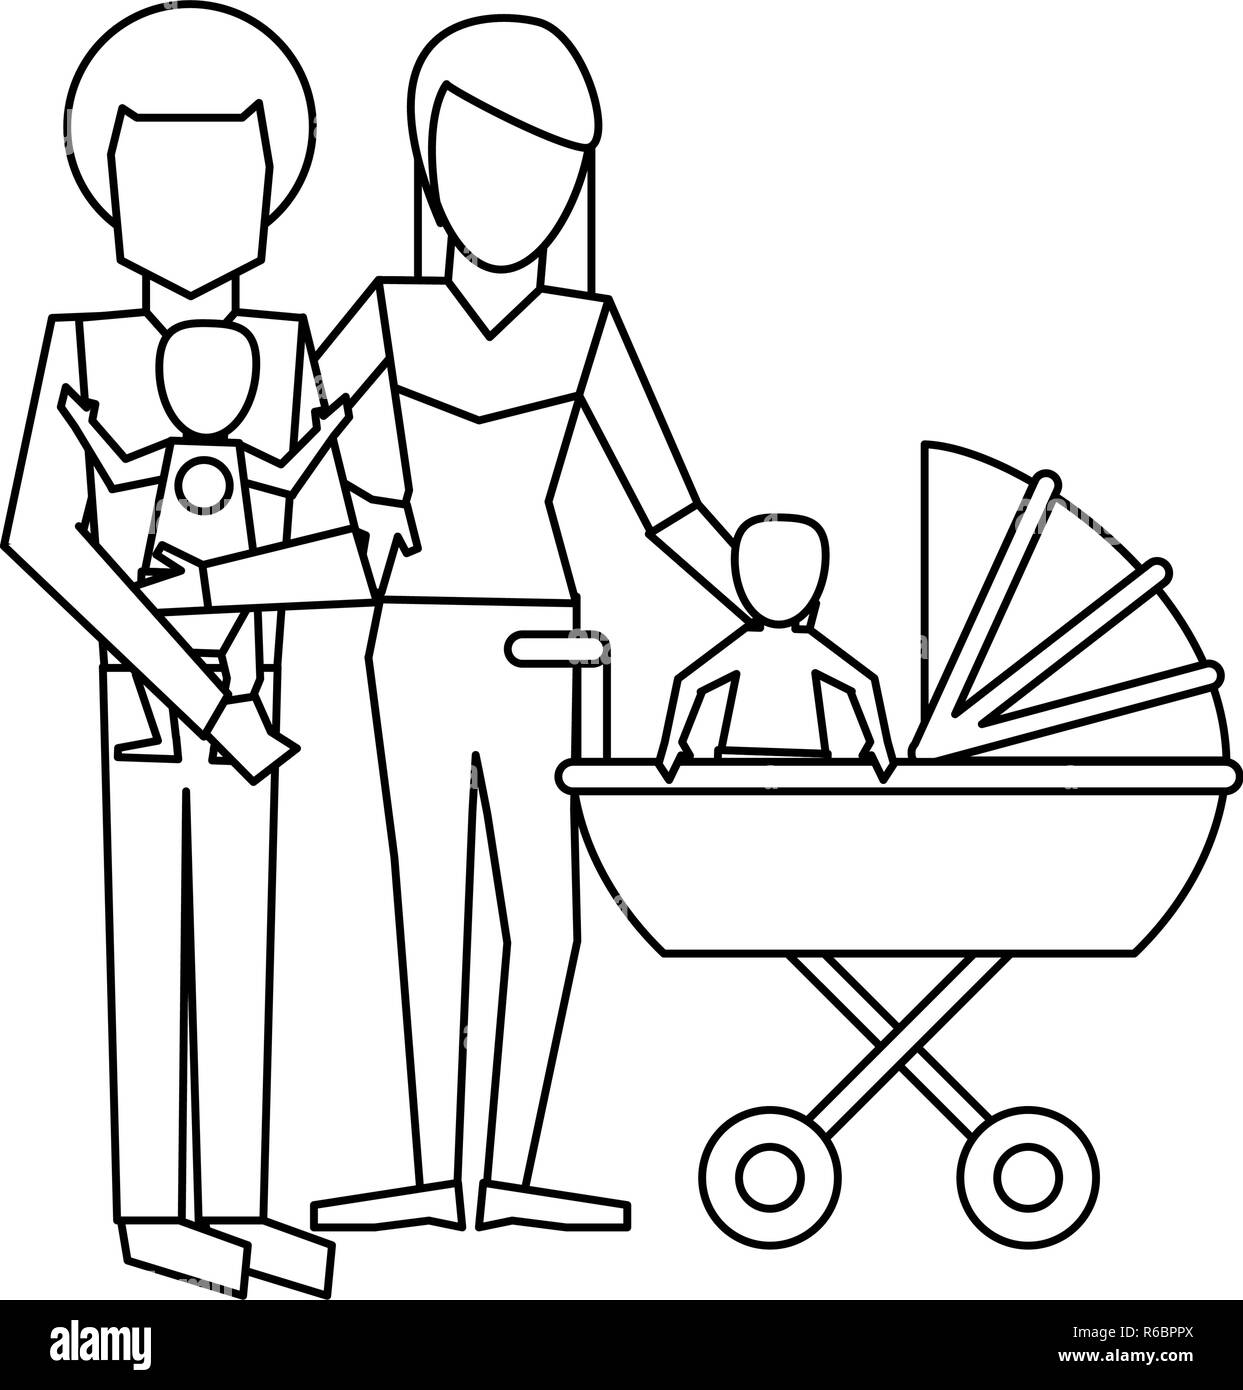 Family avatar concept black and white - Stock Vector